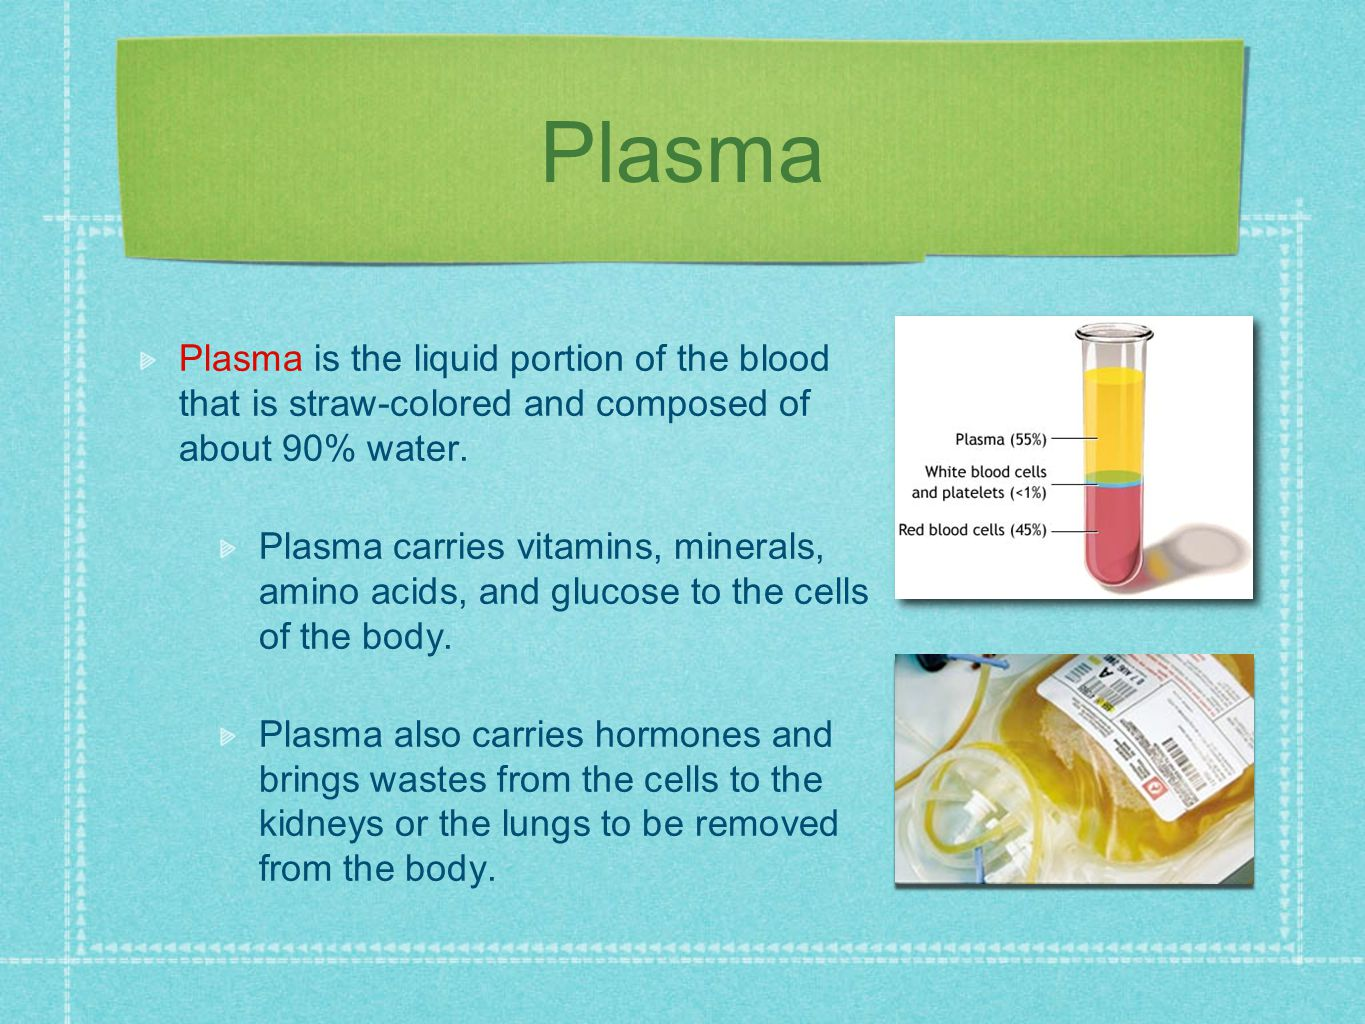 Plasma Plasma is the liquid portion of the blood that is straw-colored and composed of about 90% water.